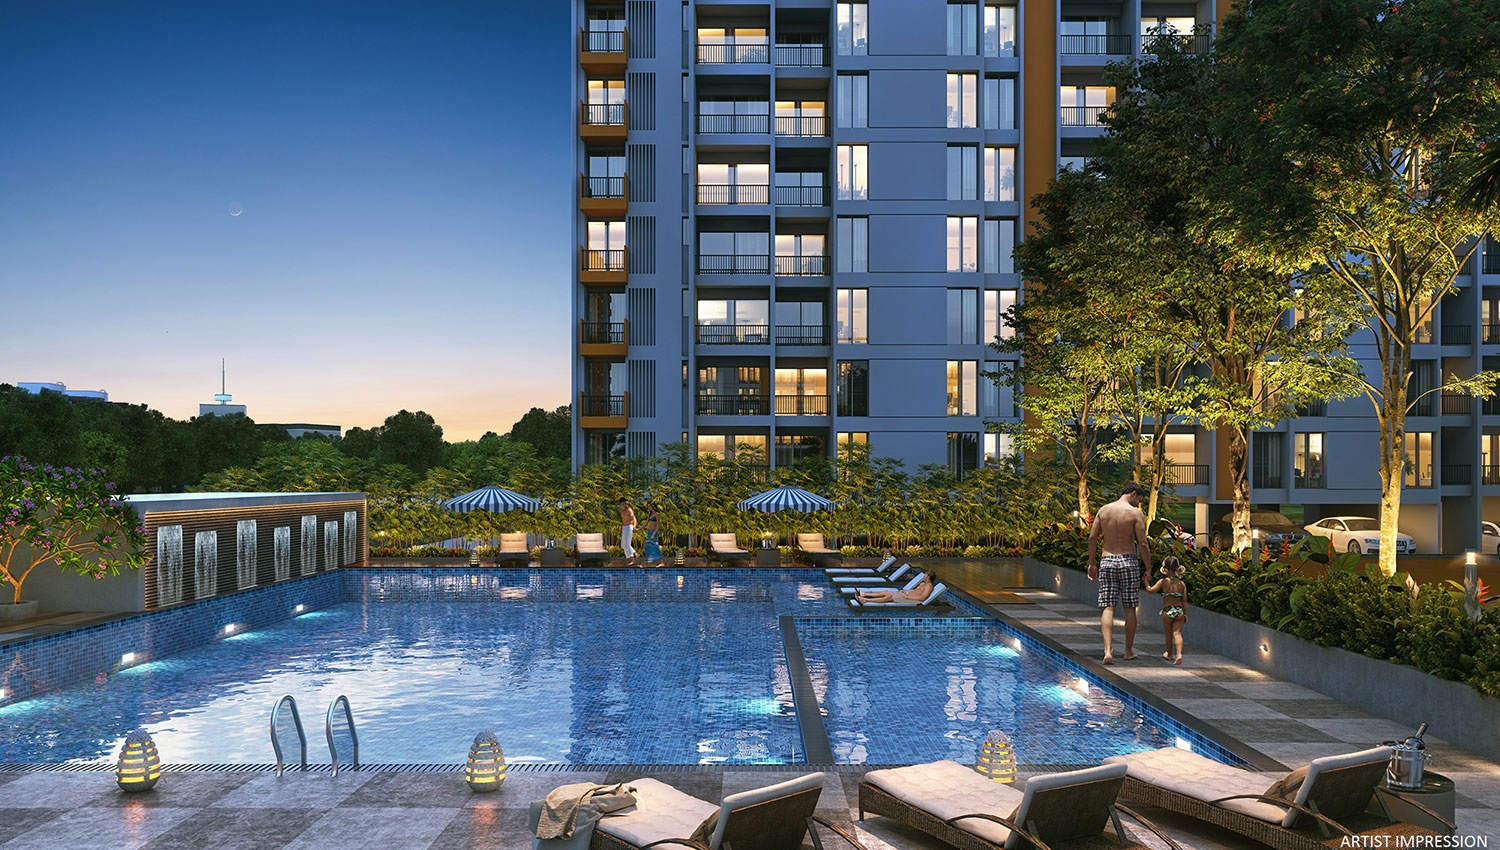 majestique rhythm county phase 2 project amenities features3